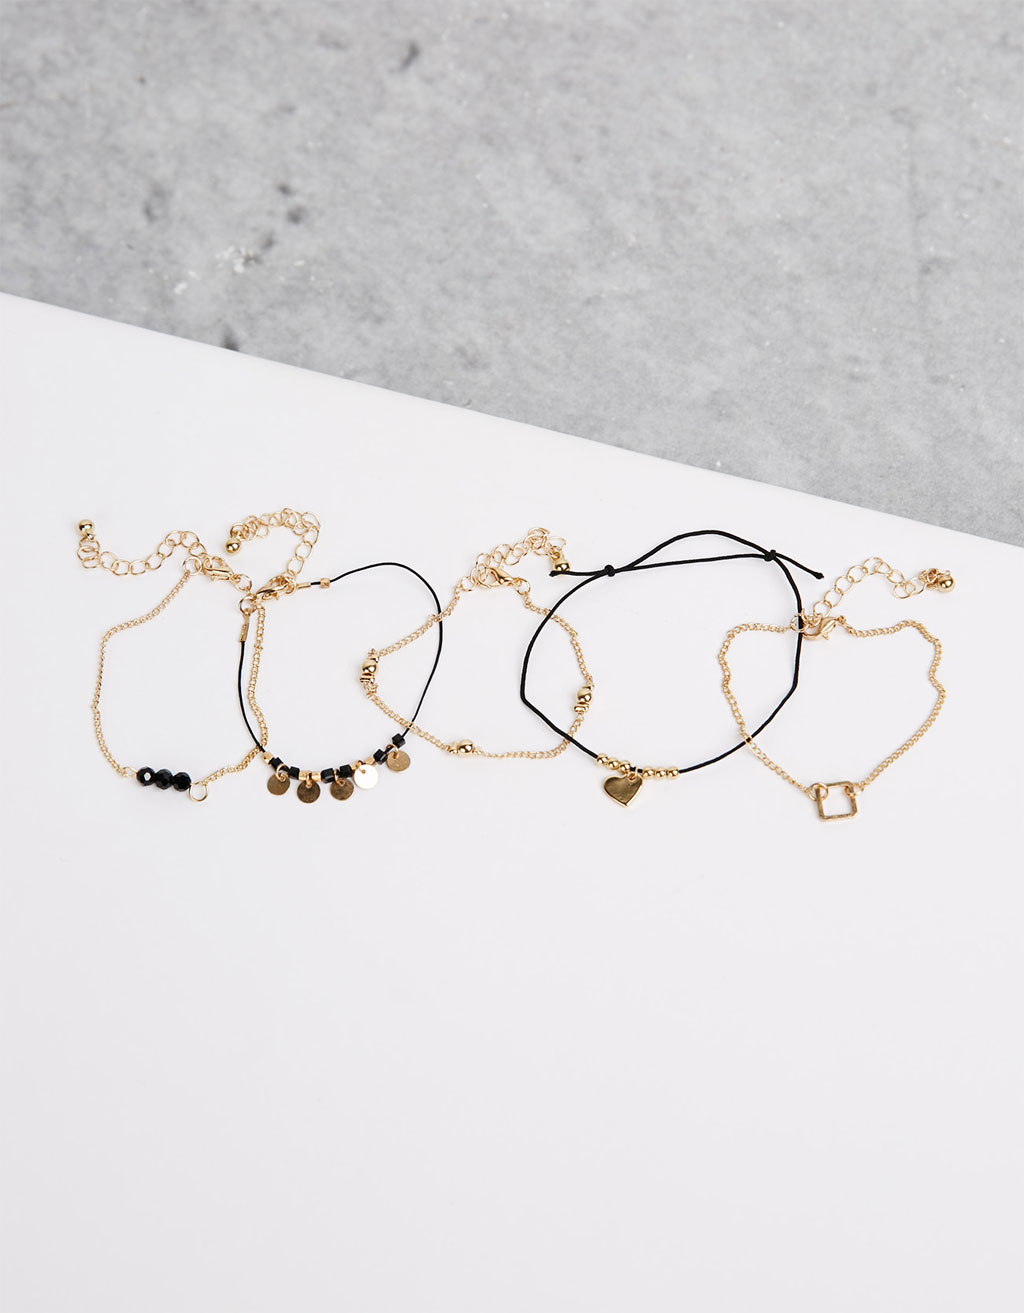 Black and gold bracelets (set of 5)